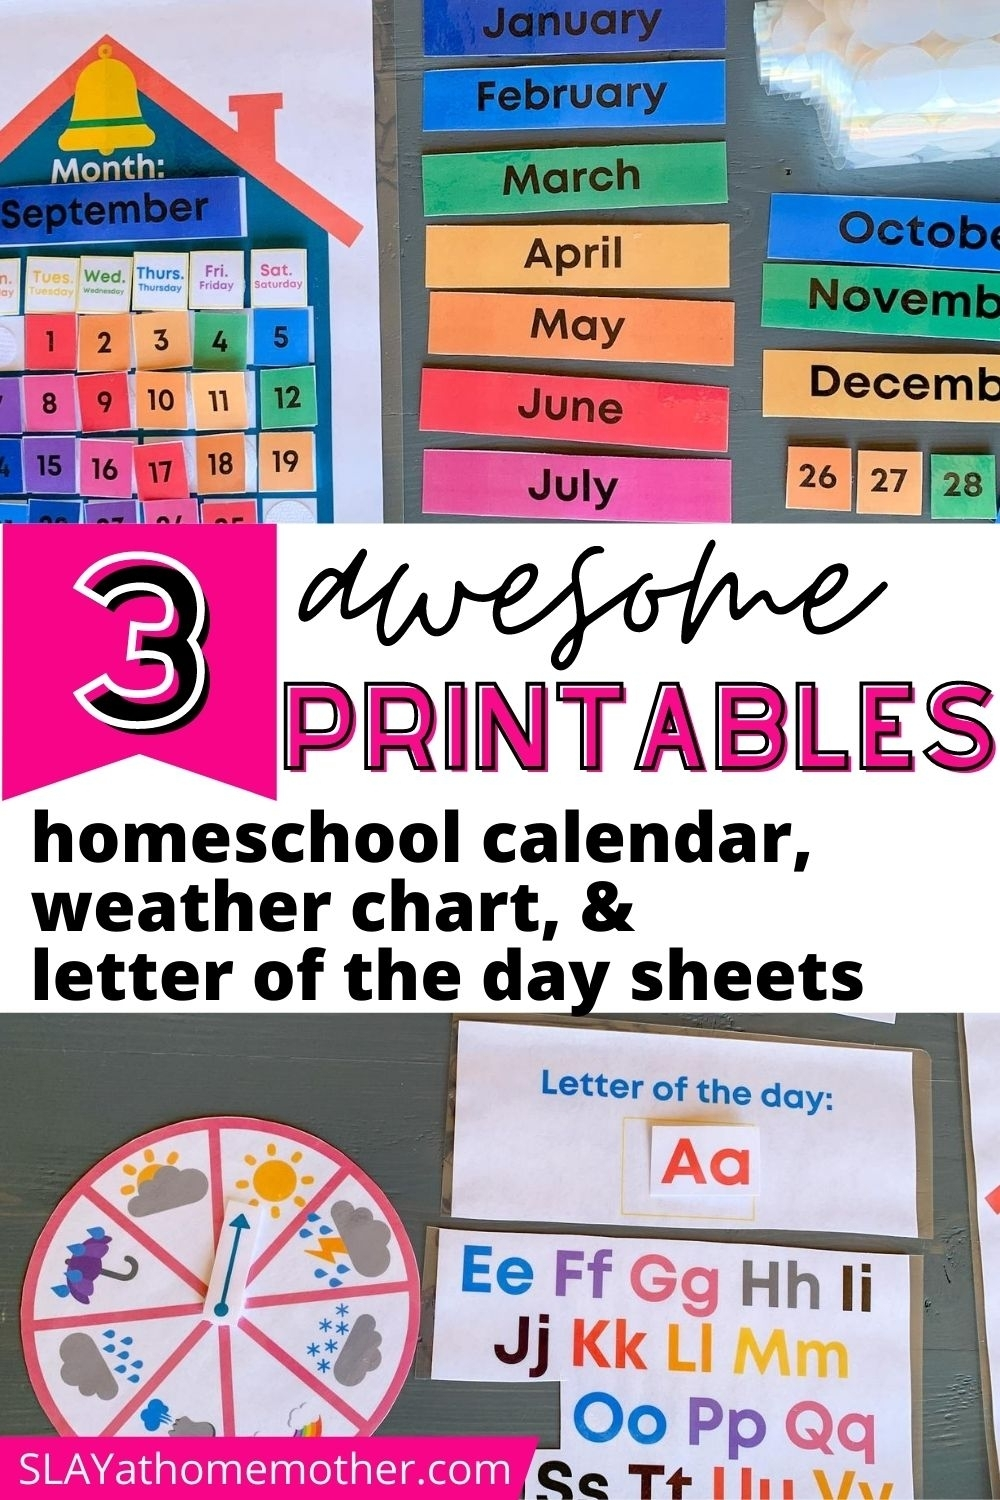 Free Printable Calendar, Weather Chart, & Letter Of The Day